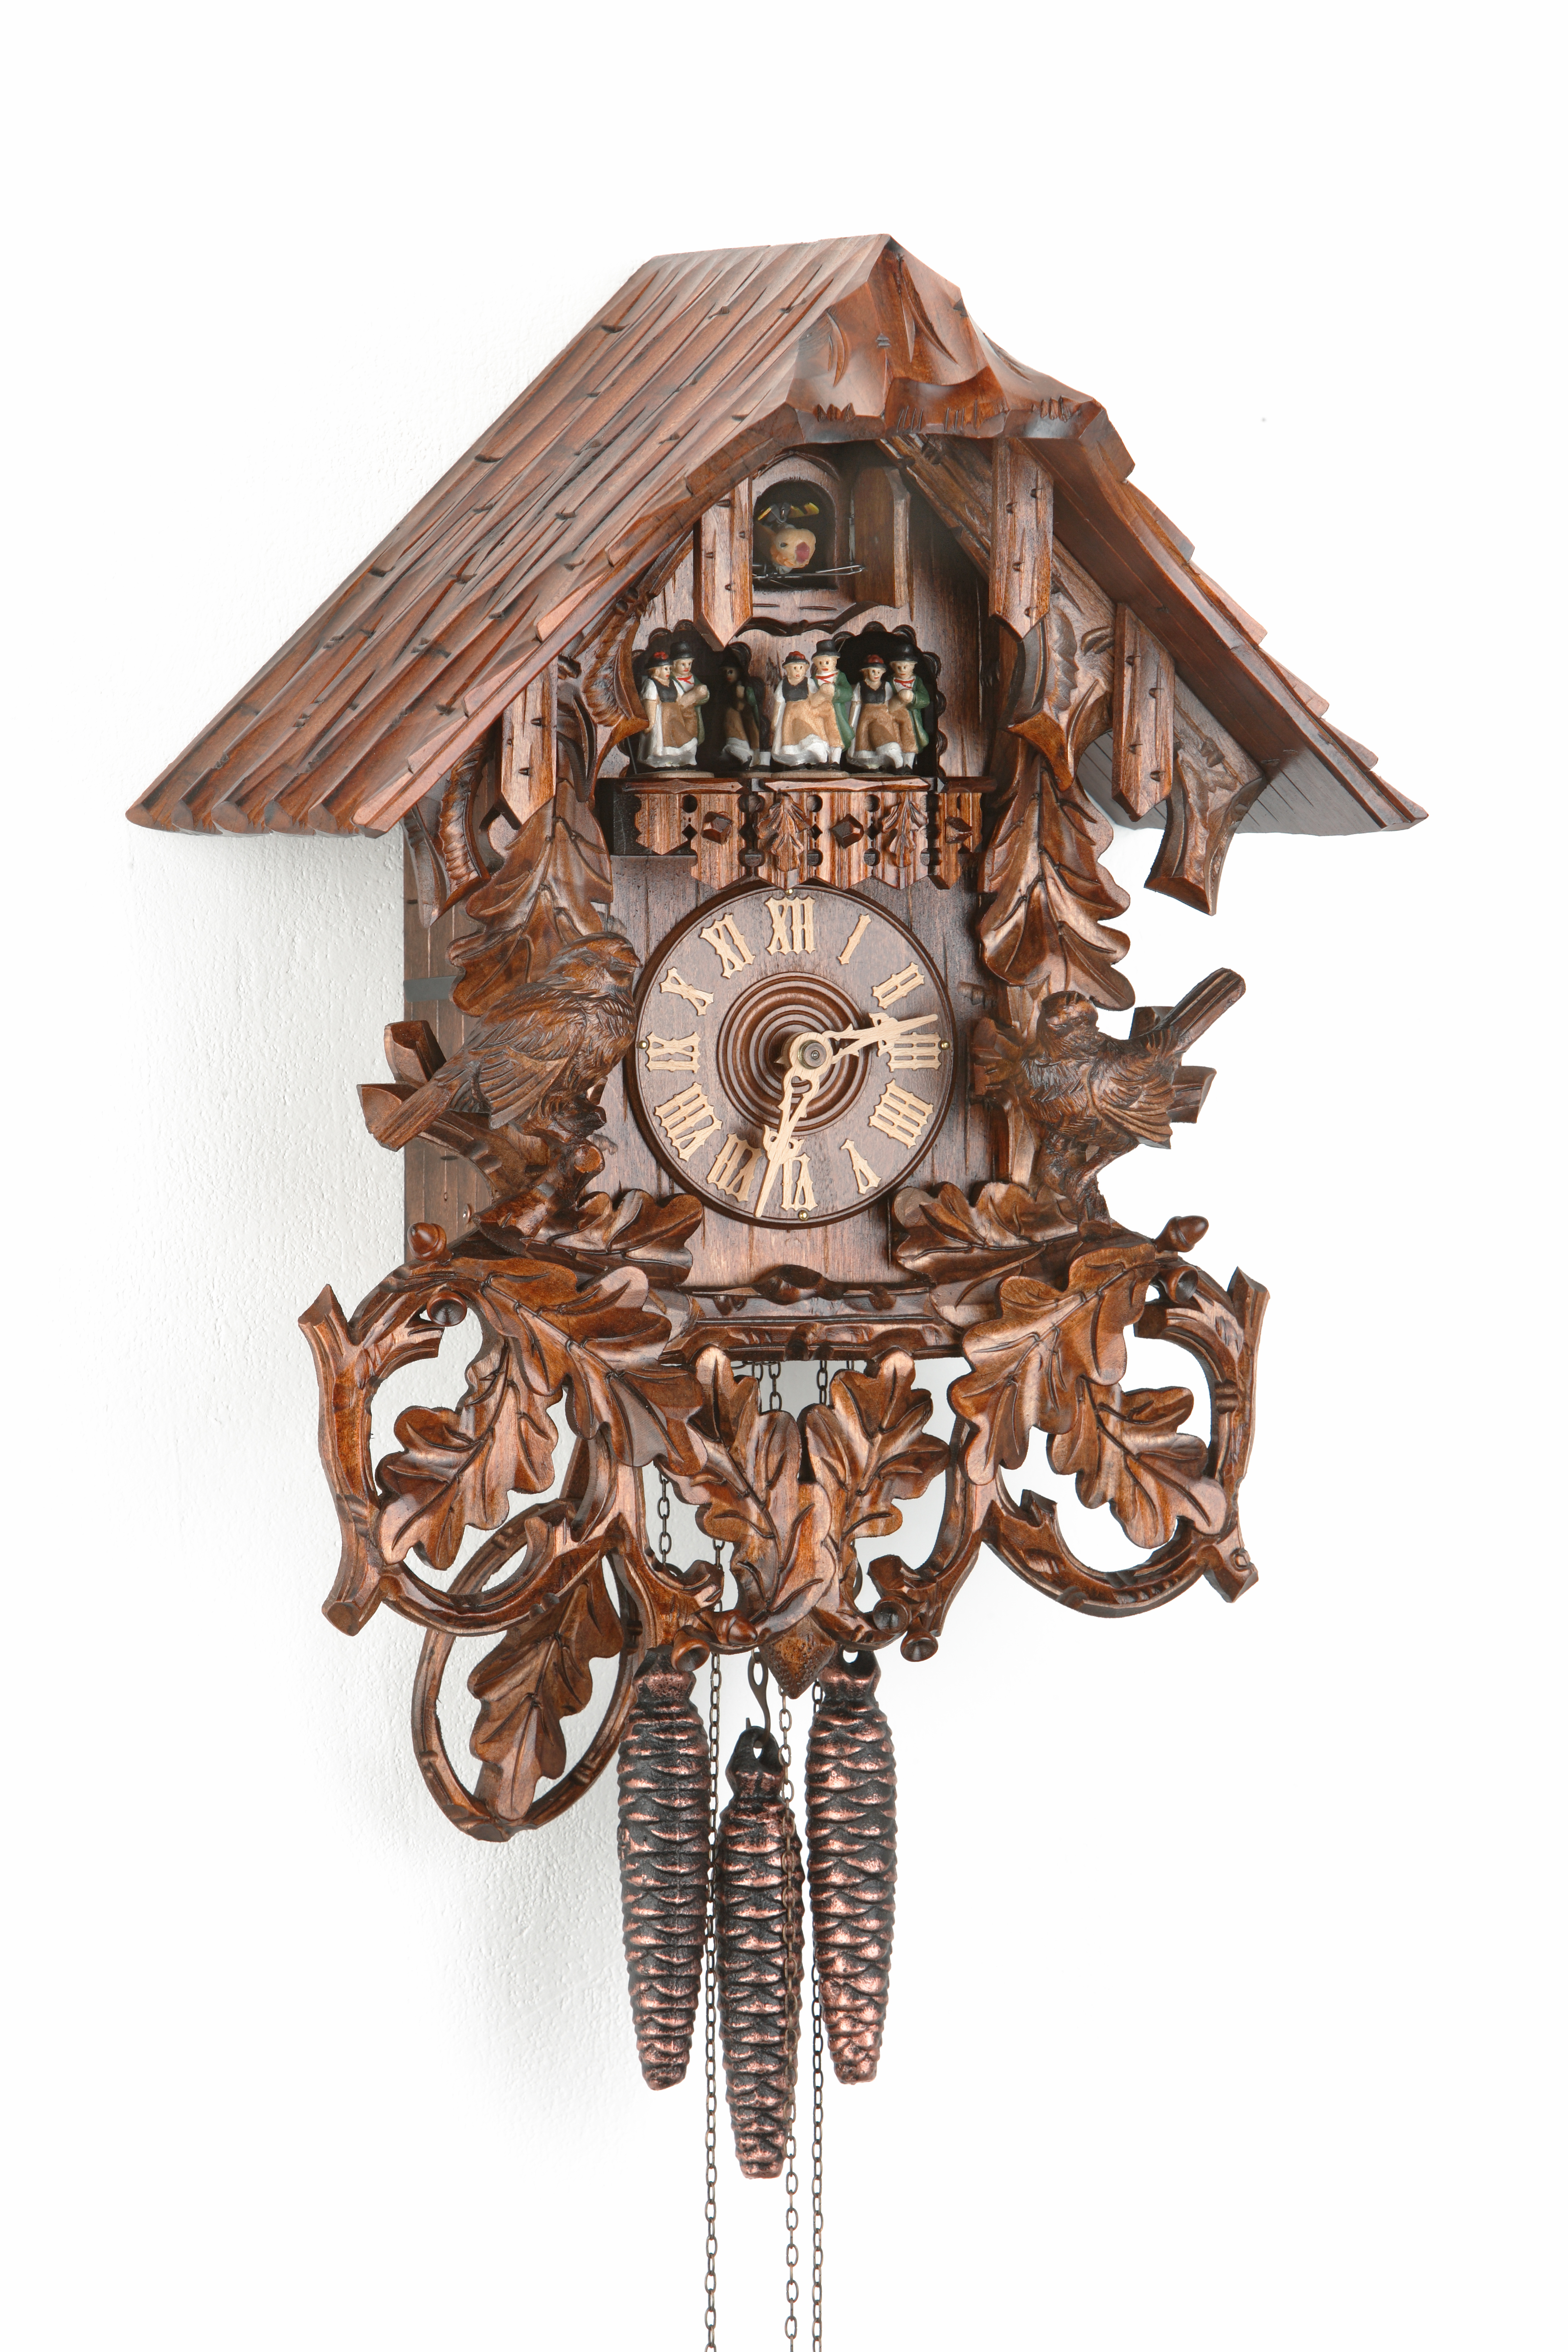 1 Day Music Dancer Cuckoo Clock Black Forest House with sparrows